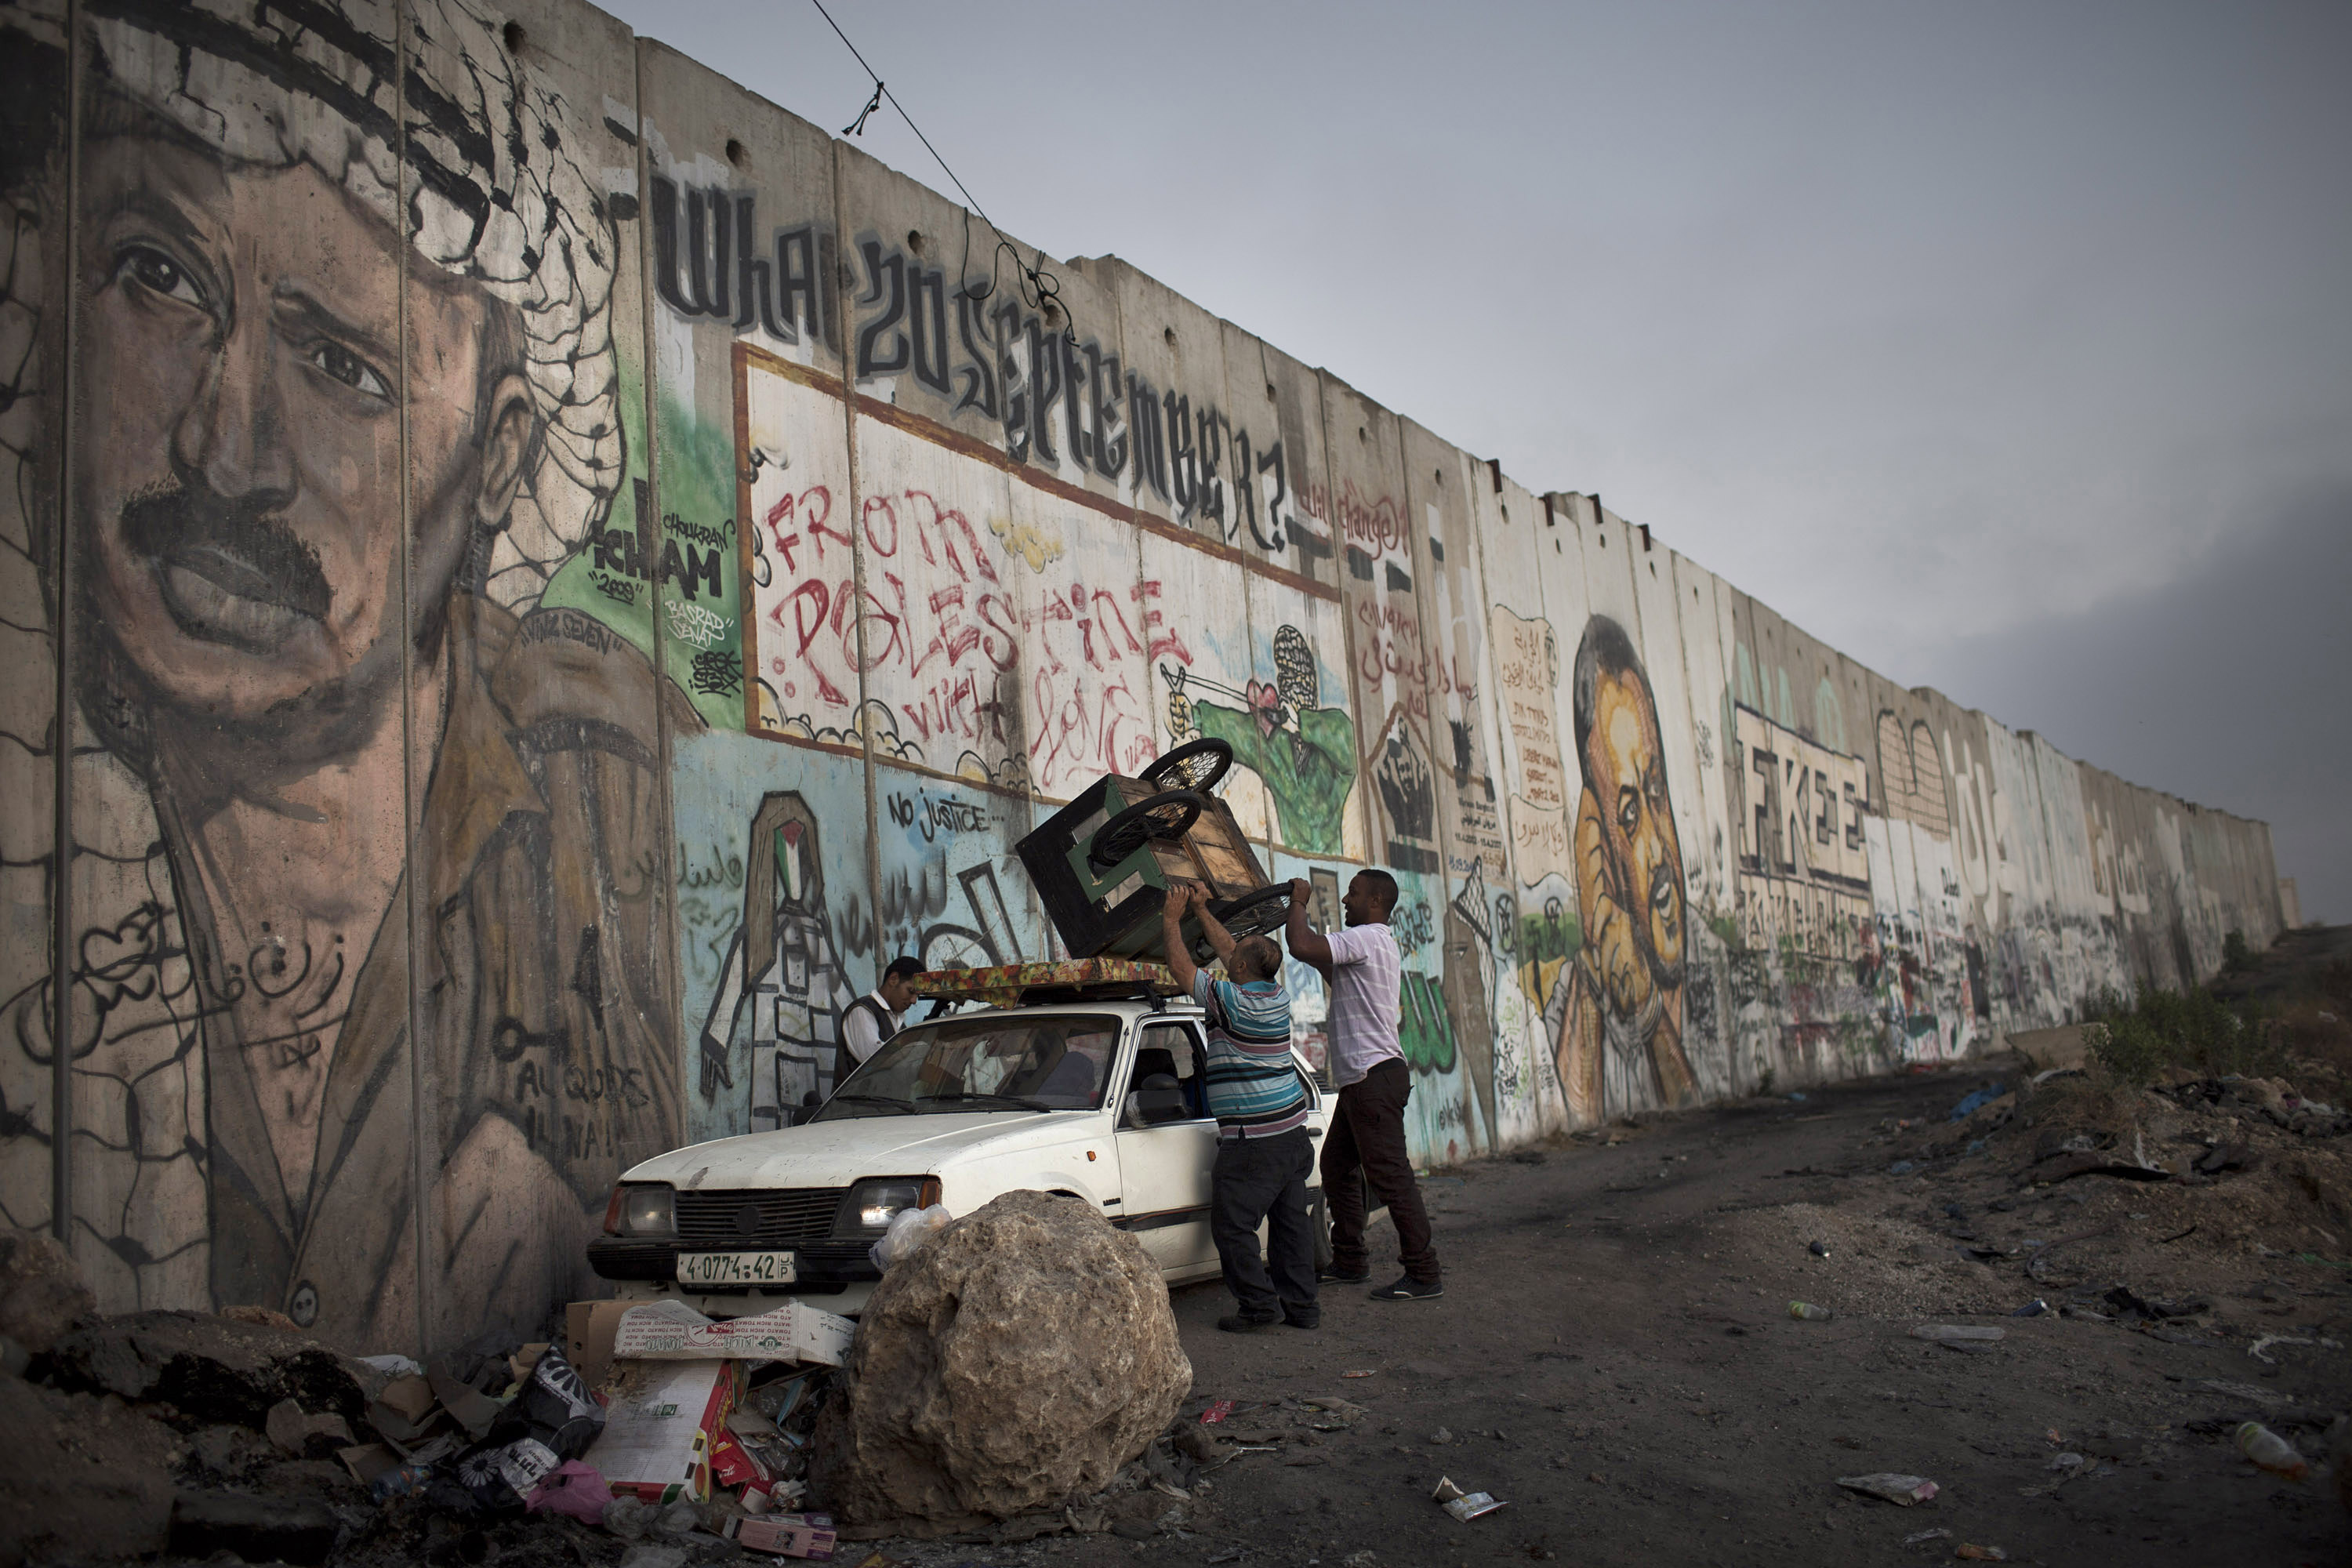 The Palestinian side of the wall is often painted with graffiti and political murals. These Palestinians loaded a cart on the third Friday of Ramadan, at the Qalandiya Checkpoint, West Bank, July 26, 2013. (Photo by Oren Ziv/GroundTruth)